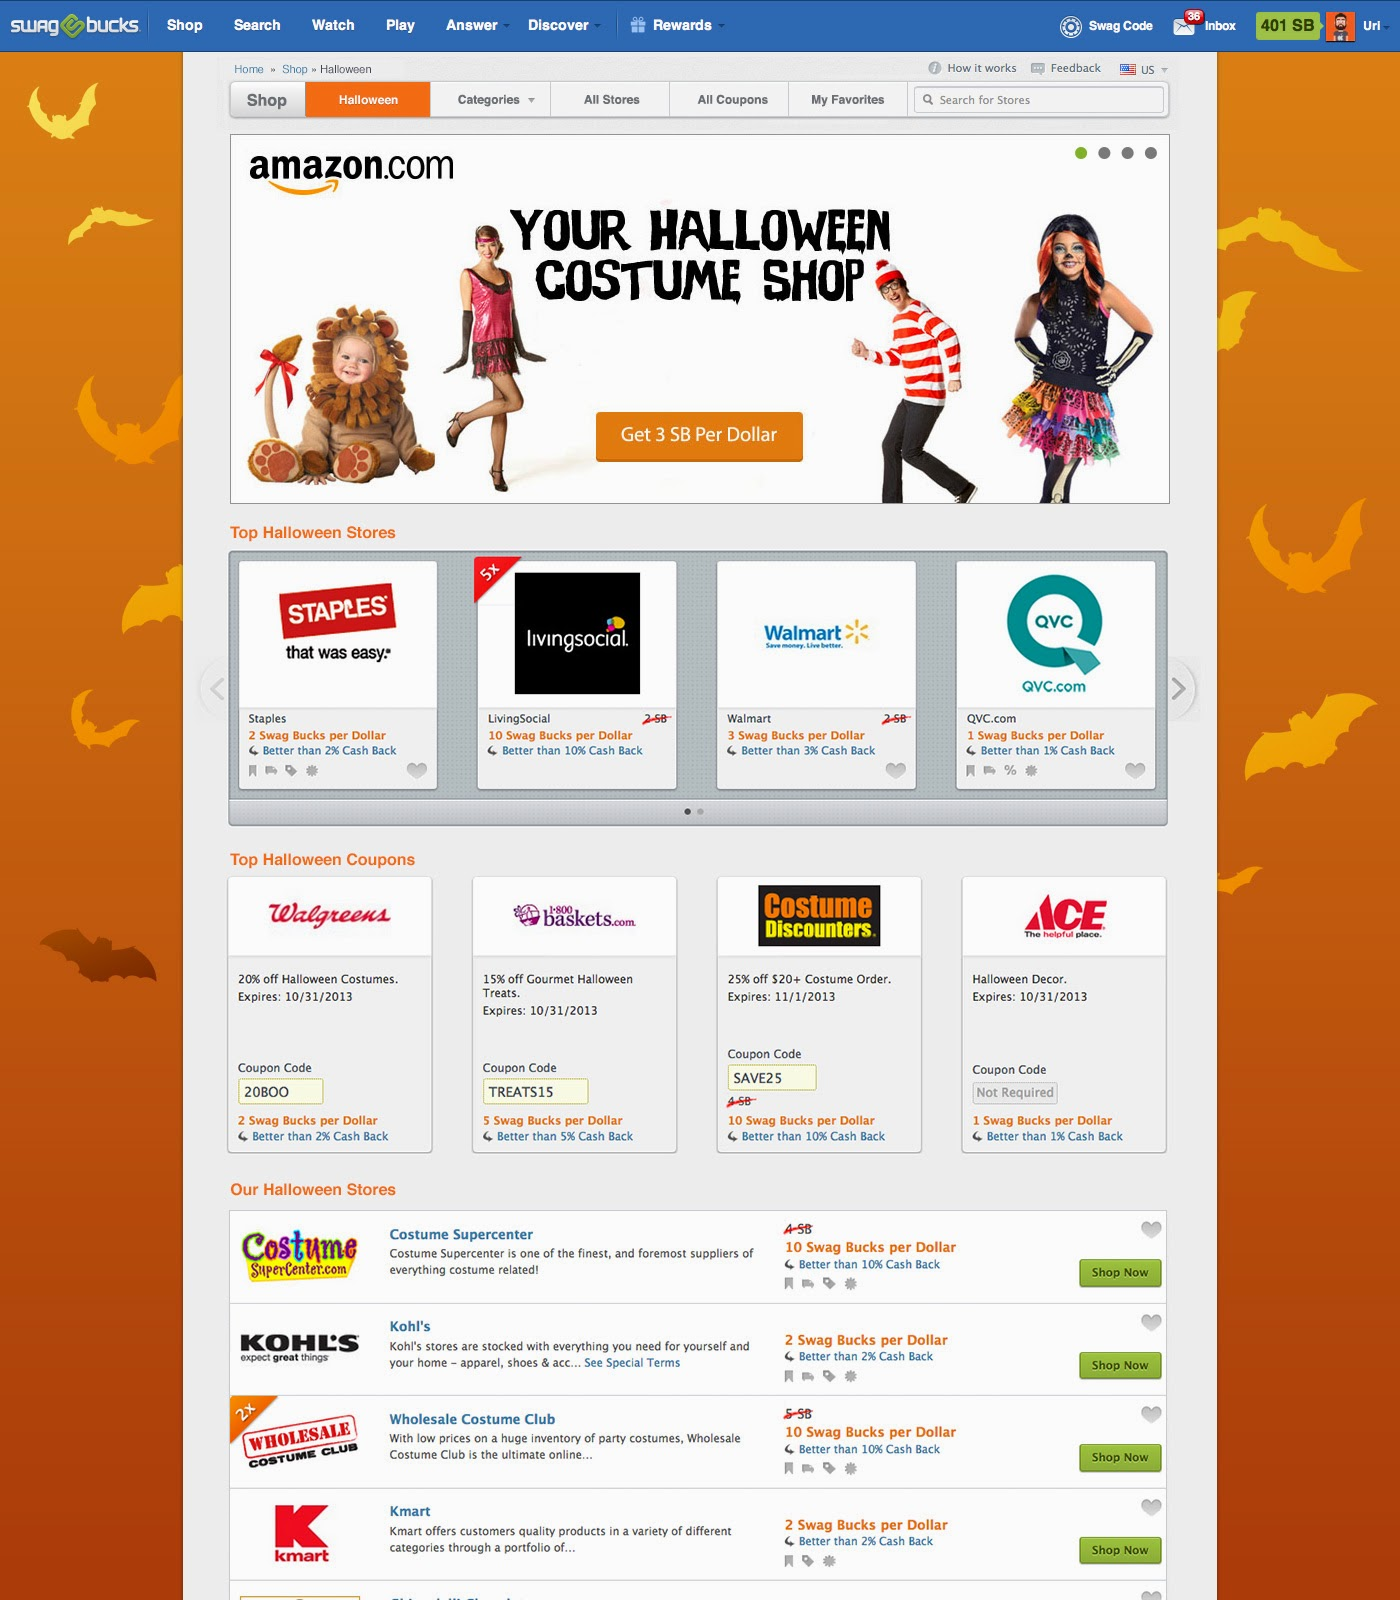 Swagbucks Amazon Halloween